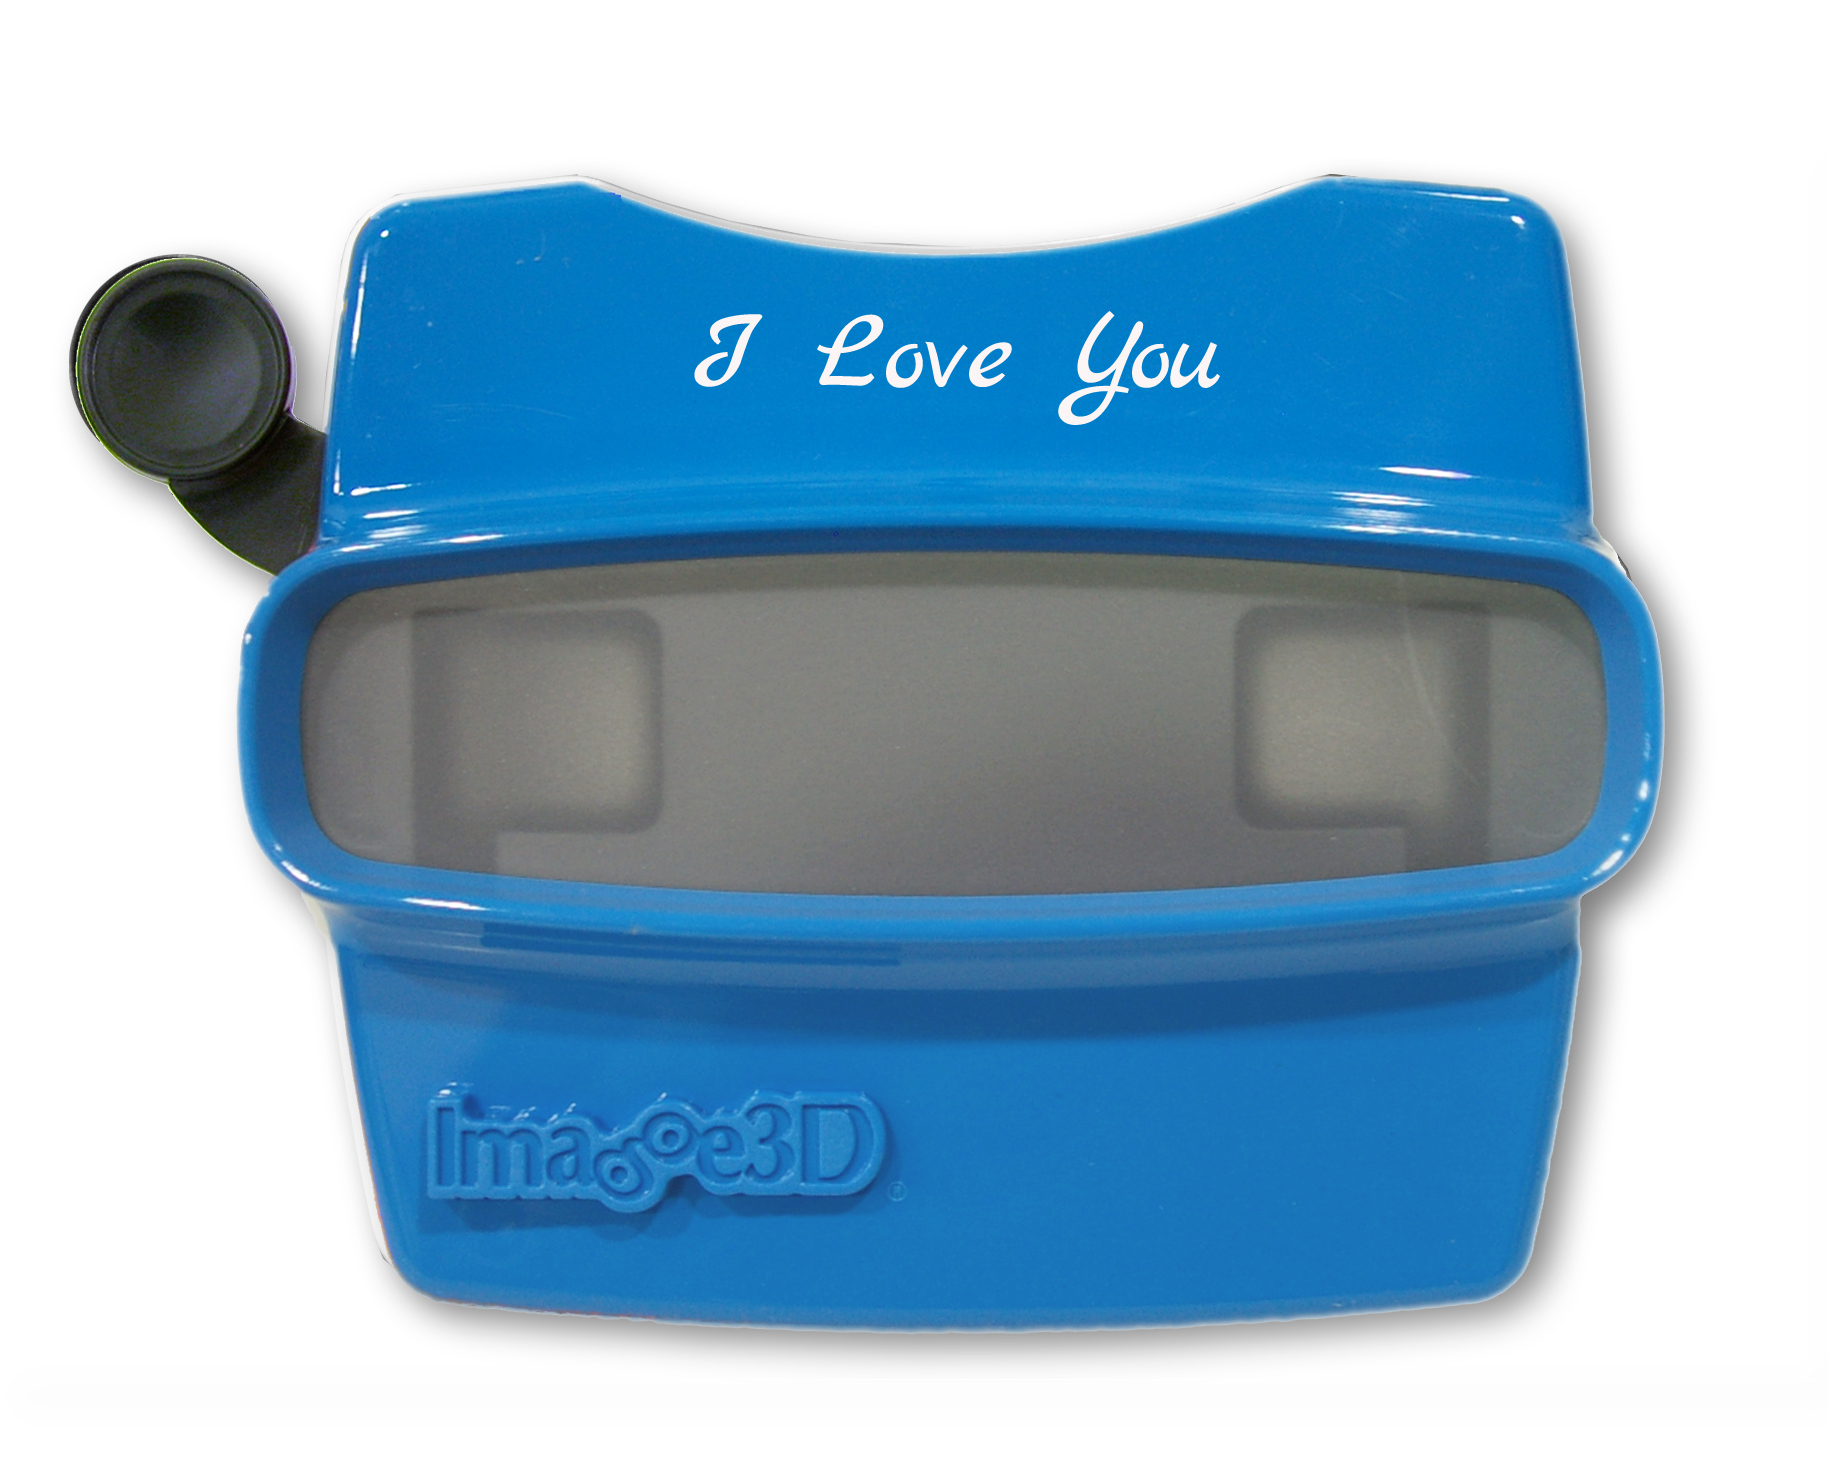 Blue RetroViewer with I Love You customization